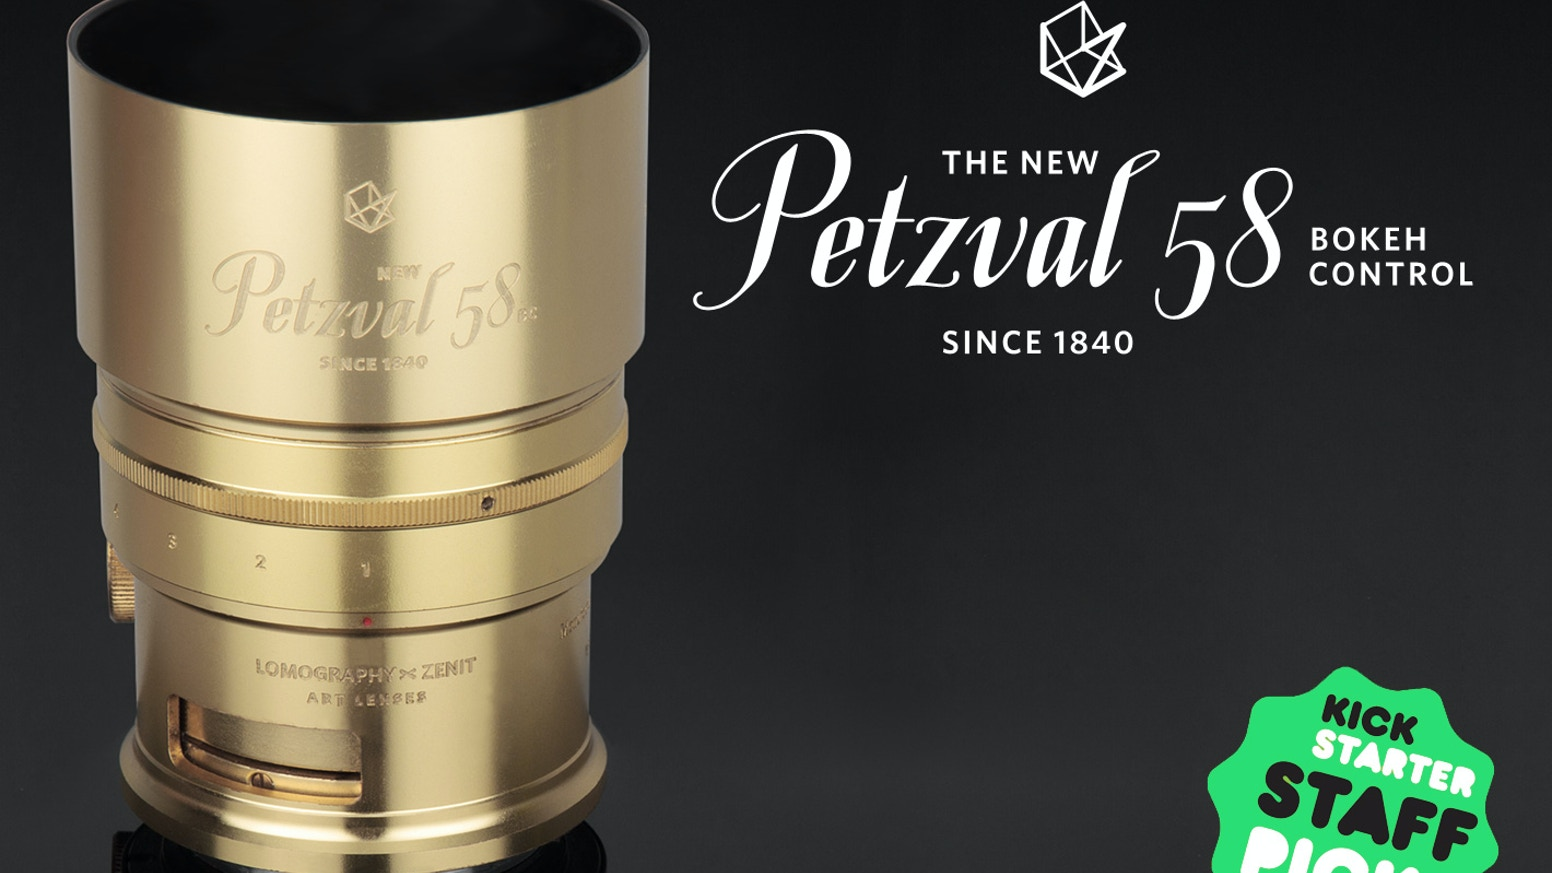 Swirl to Freedom with the World's First Petzval Bokeh Control Lens.